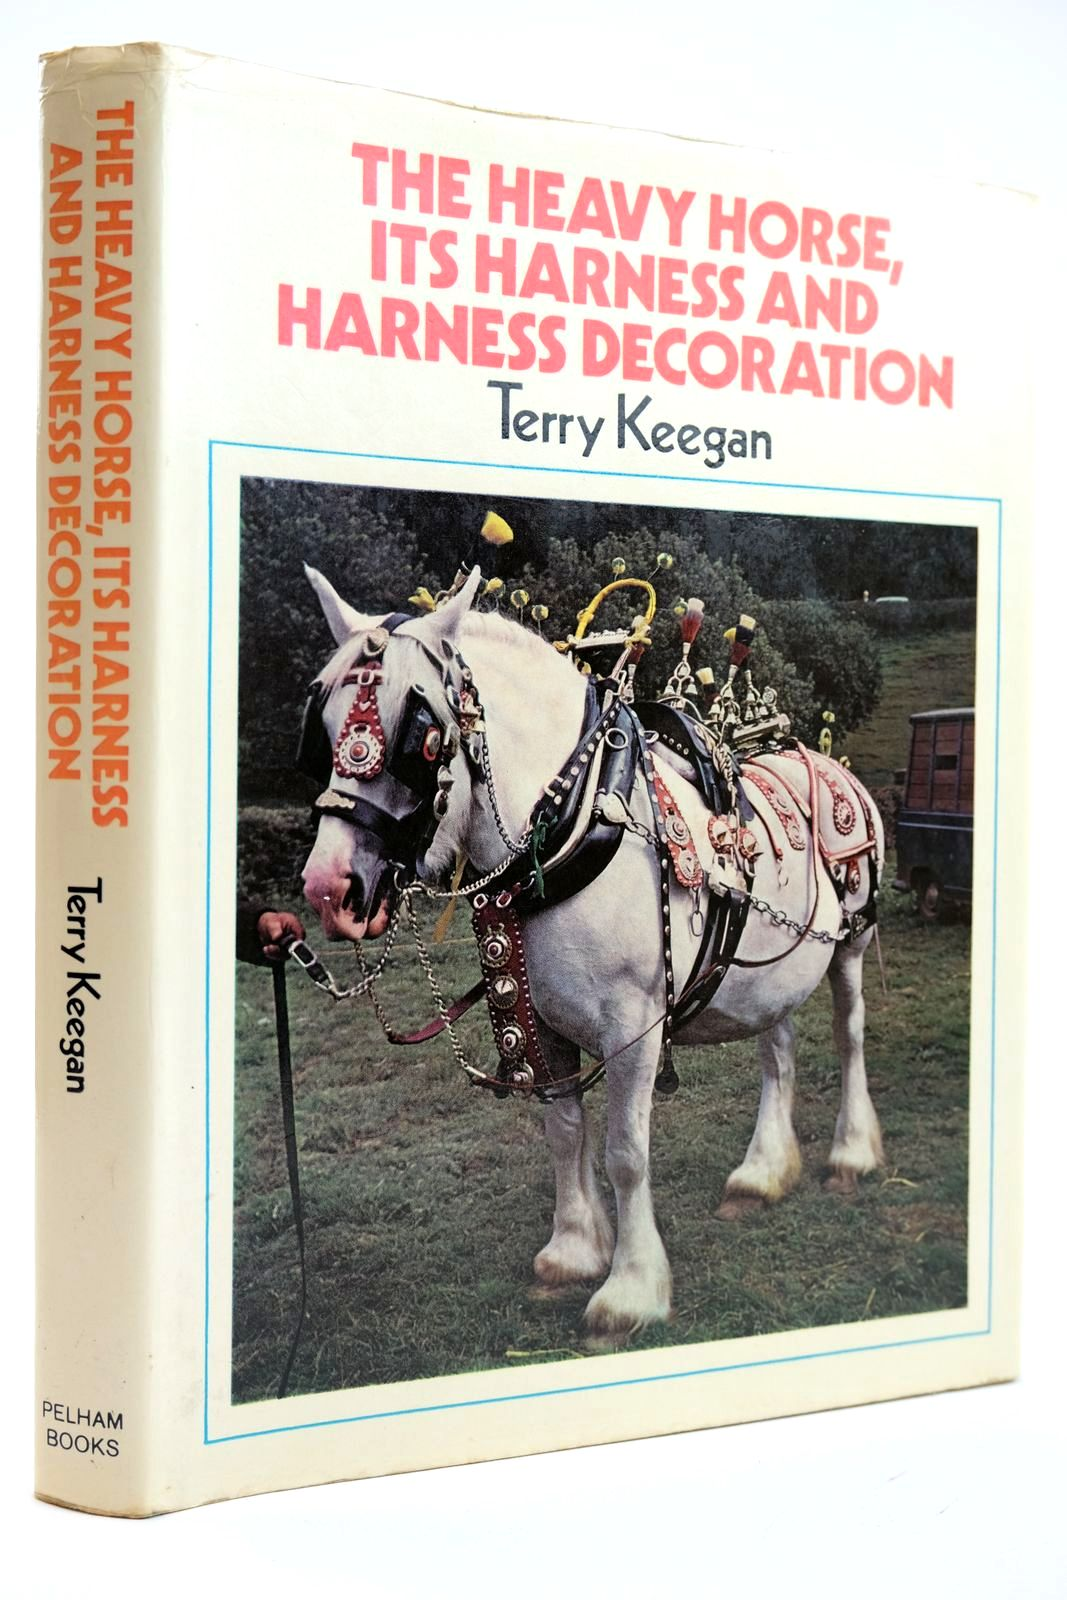 Photo of THE HEAVY HORSE ITS HARNESS AND HARNESS DECORATION written by Keegan, Terry illustrated by Keegan, G.A. published by Pelham Books (STOCK CODE: 2132143)  for sale by Stella & Rose's Books